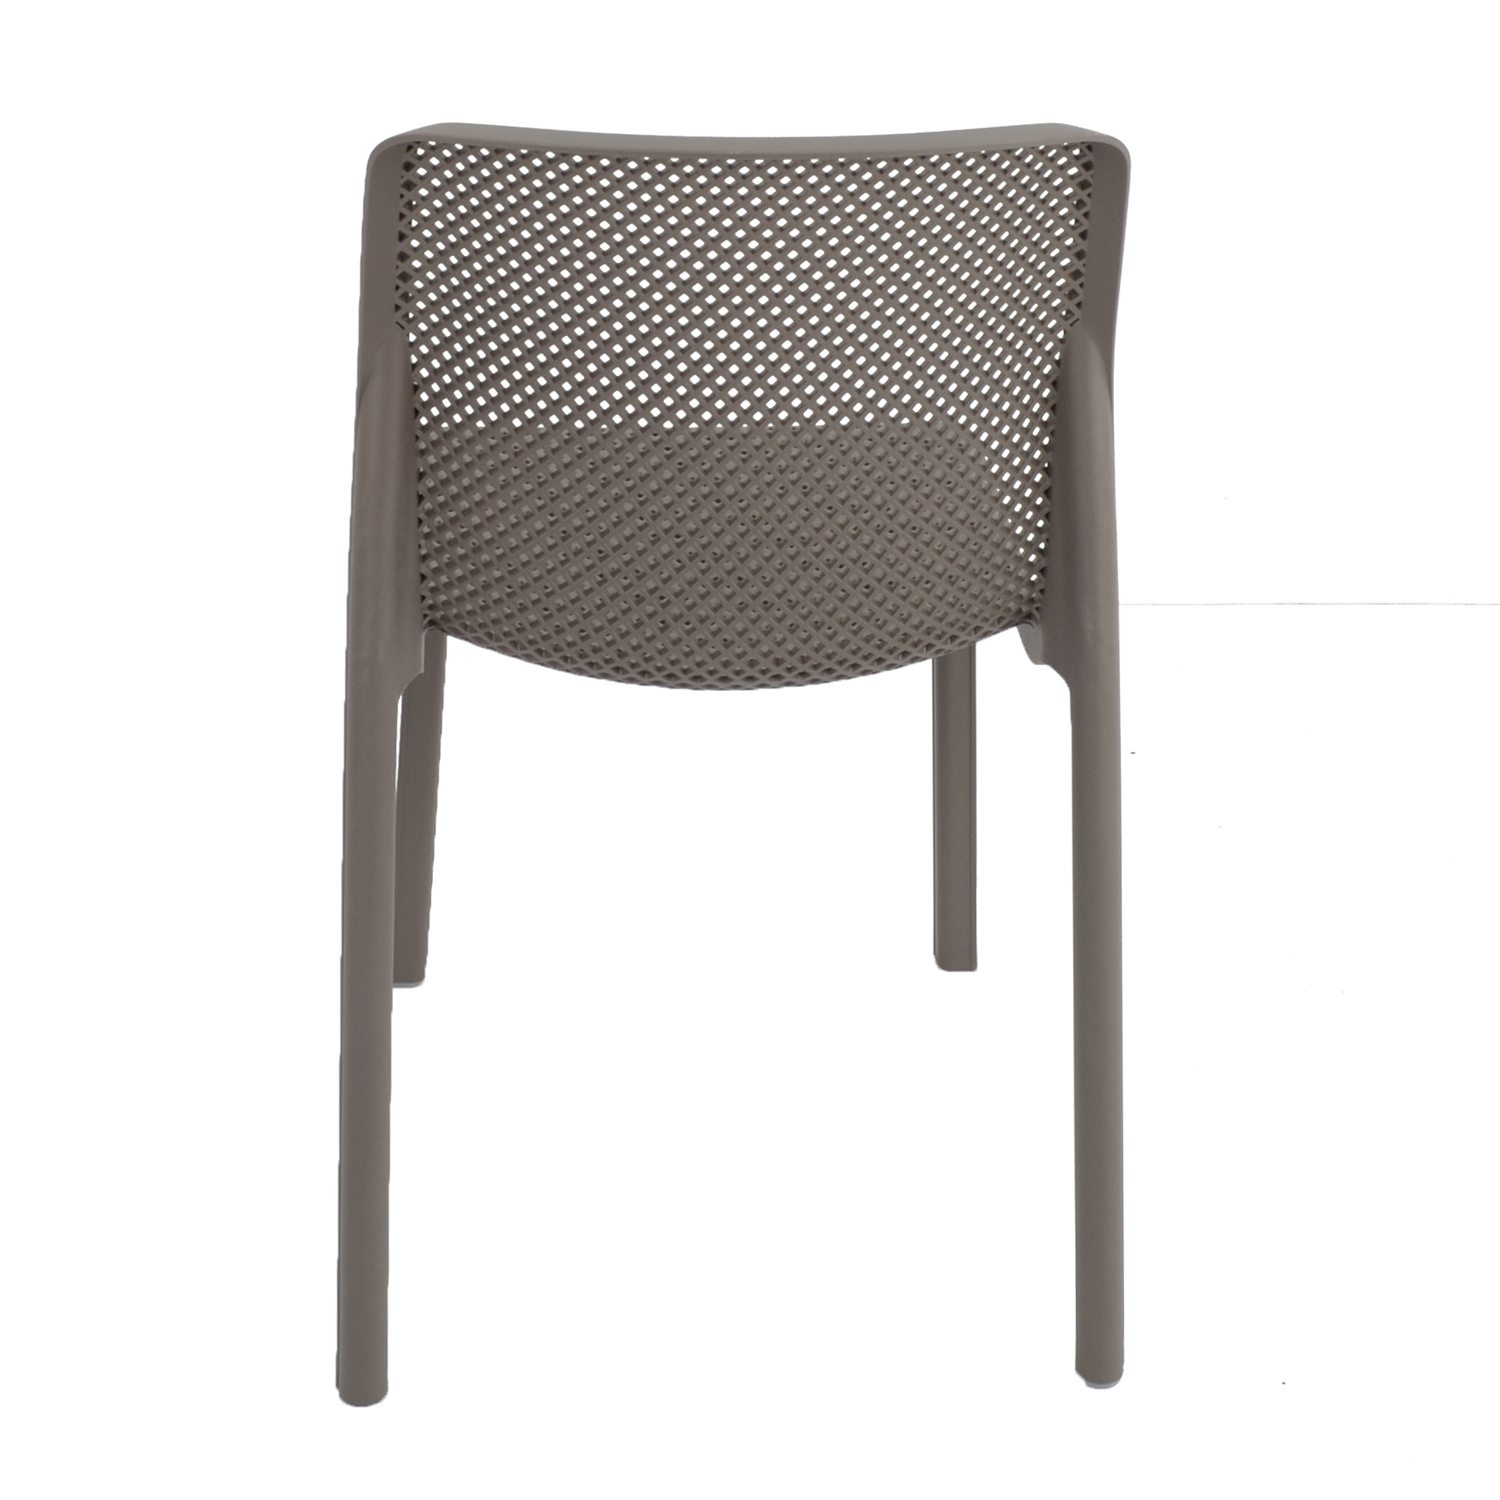 BIT CHAIR TURTLE DOVE PROFILE WS5